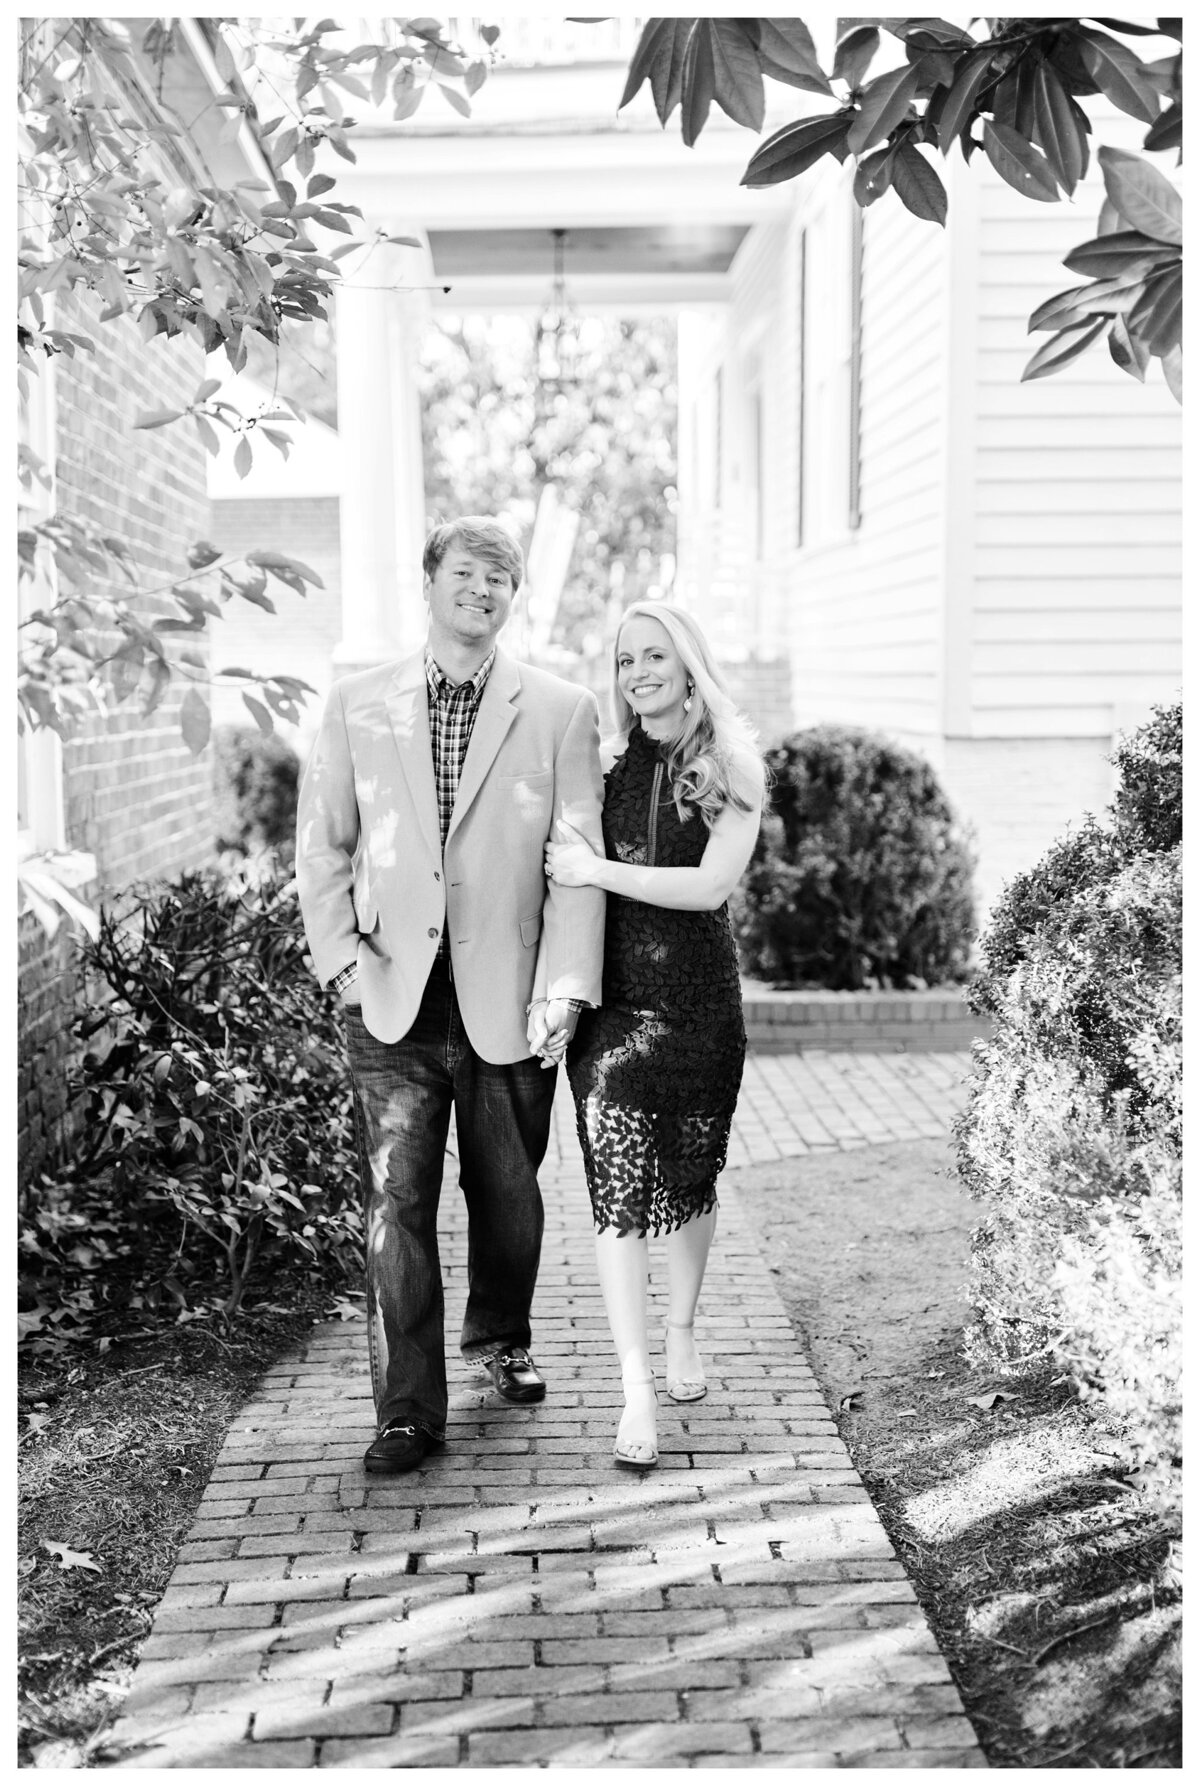 canady-engagements-atlanta-wedding-photographer-20